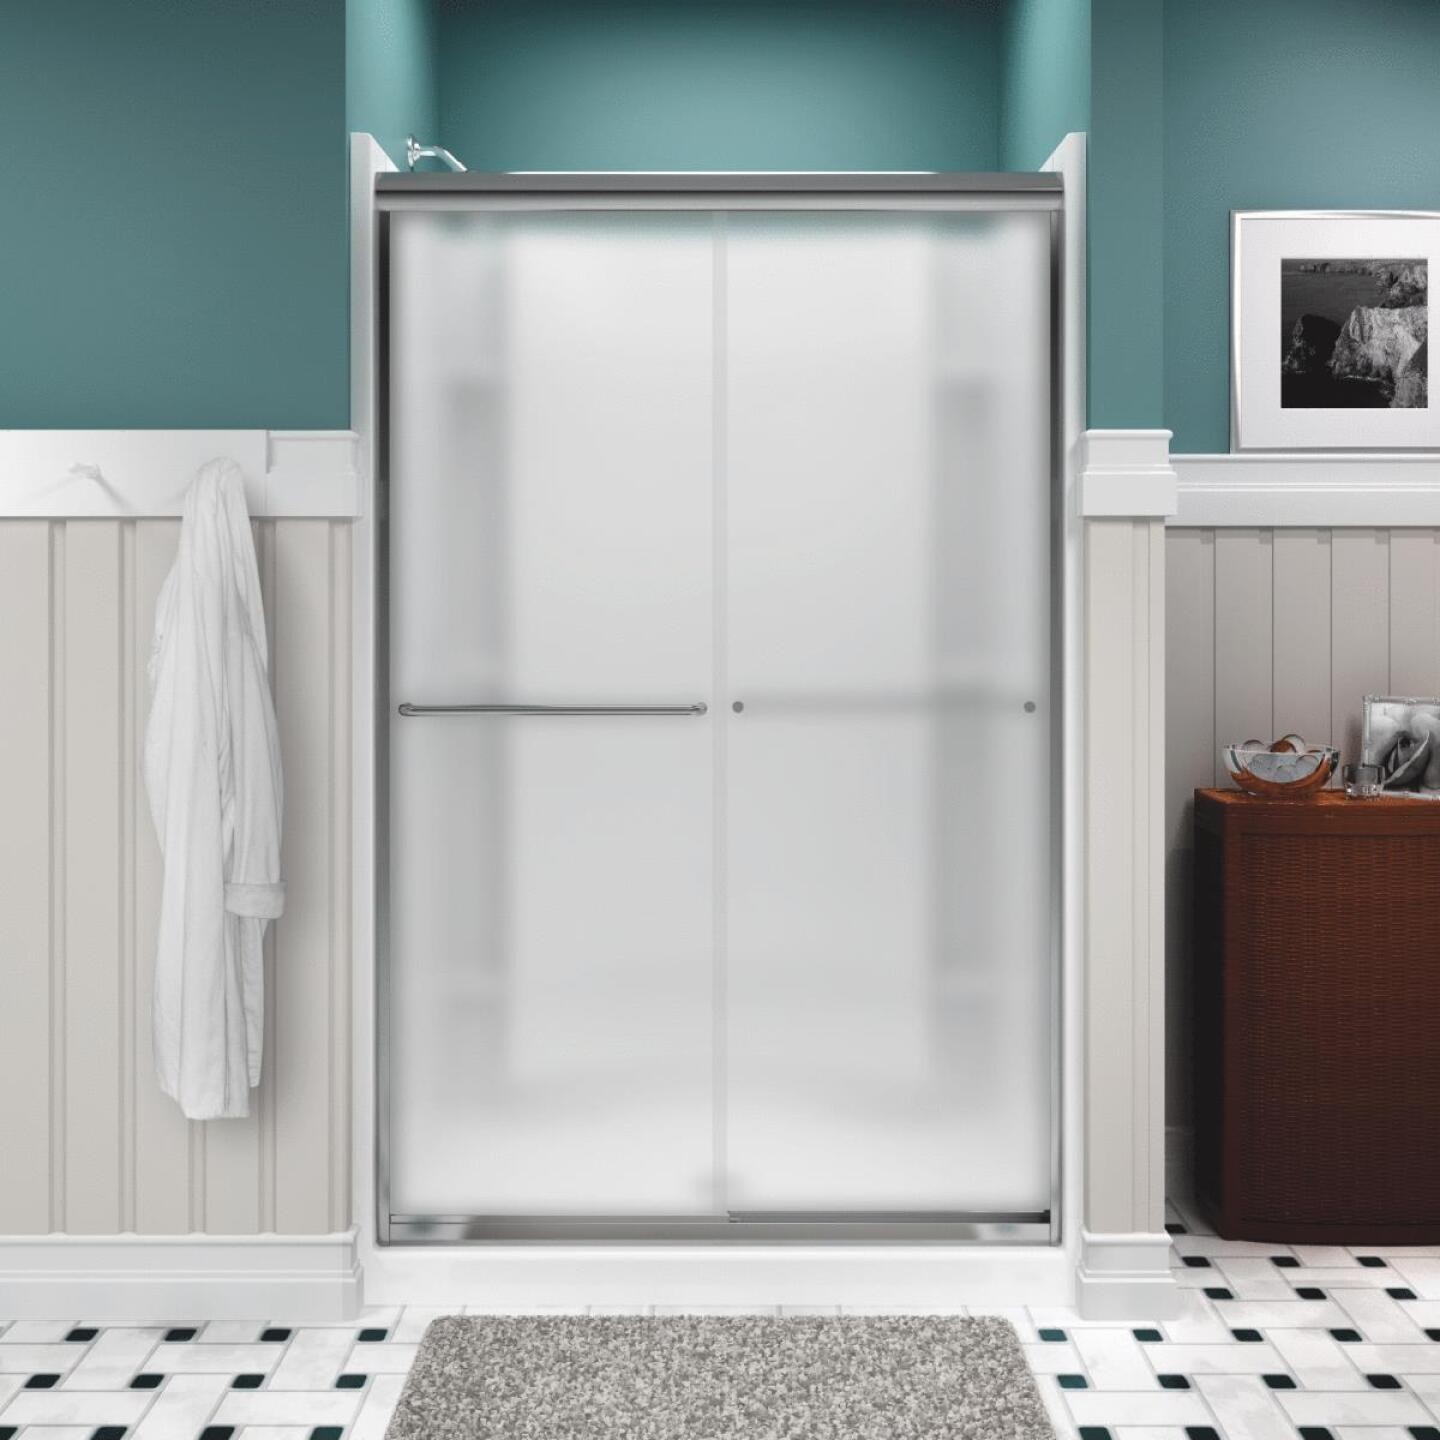 Sterling Finesse 47-5/8 In. W. X 70-1/16 In. H. Chrome Frameless Frosted Glass Sliding Shower Door Image 1